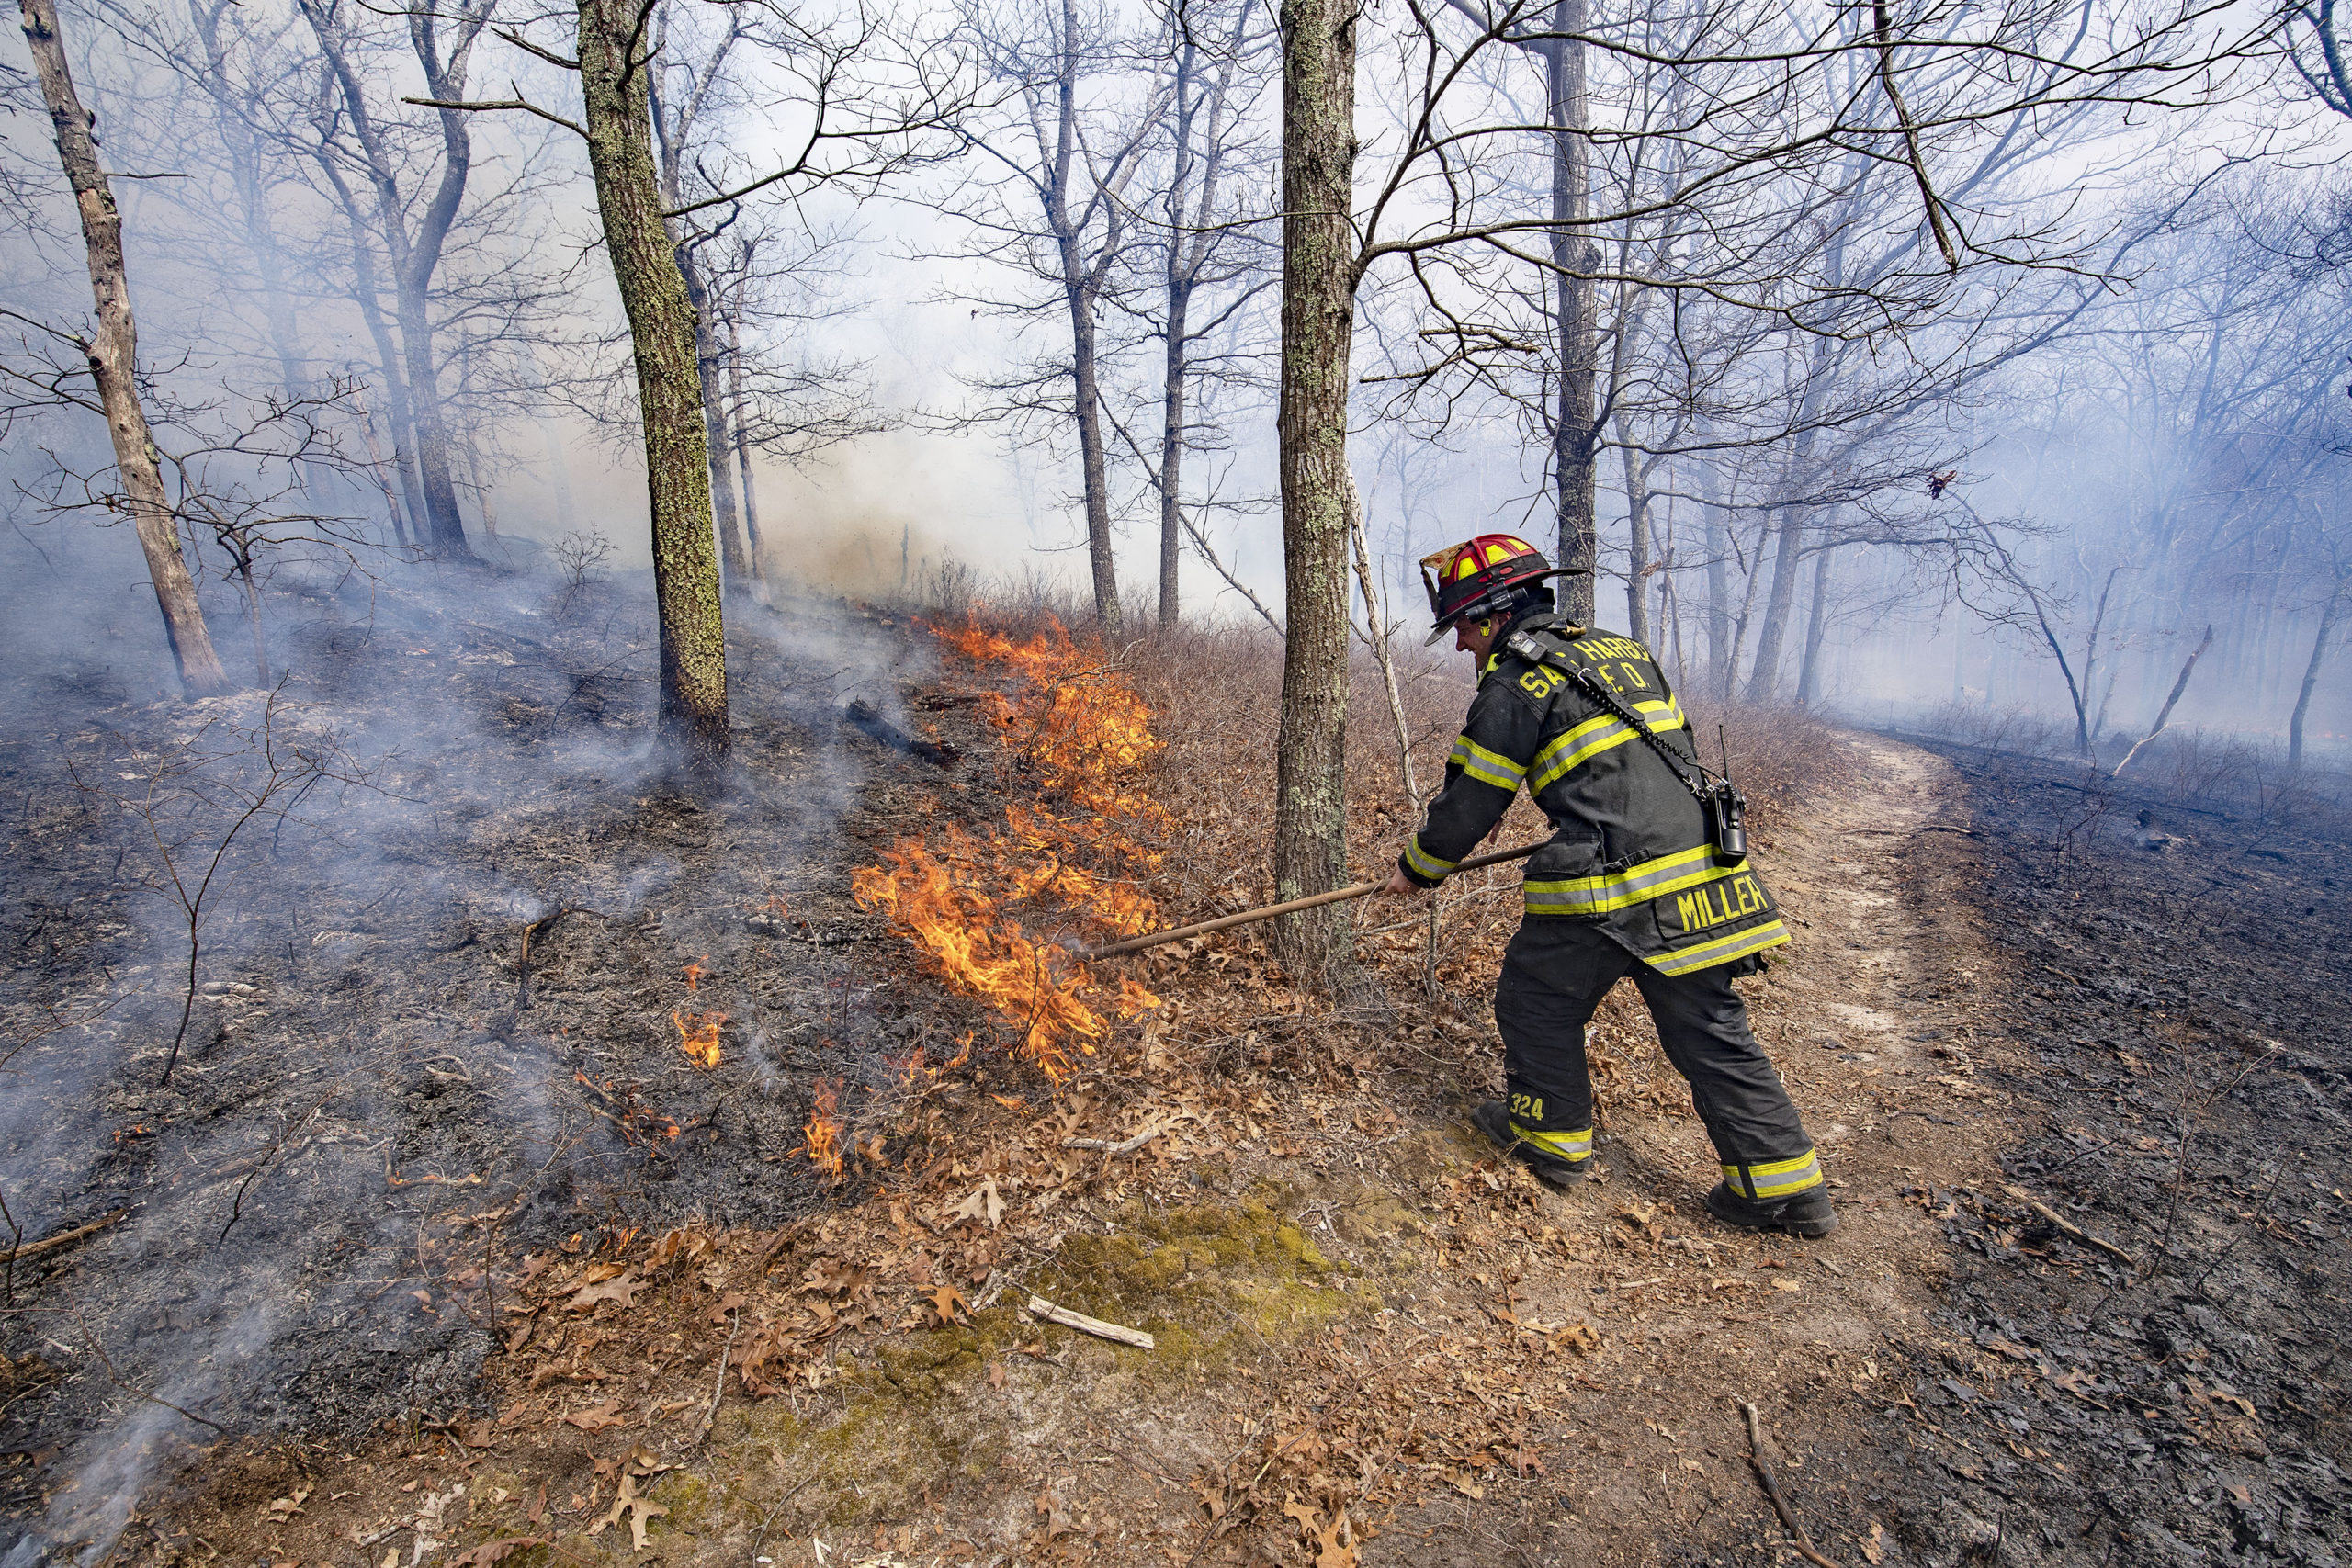 At the brush fire in Wainscott Woods Saturday afternoon.